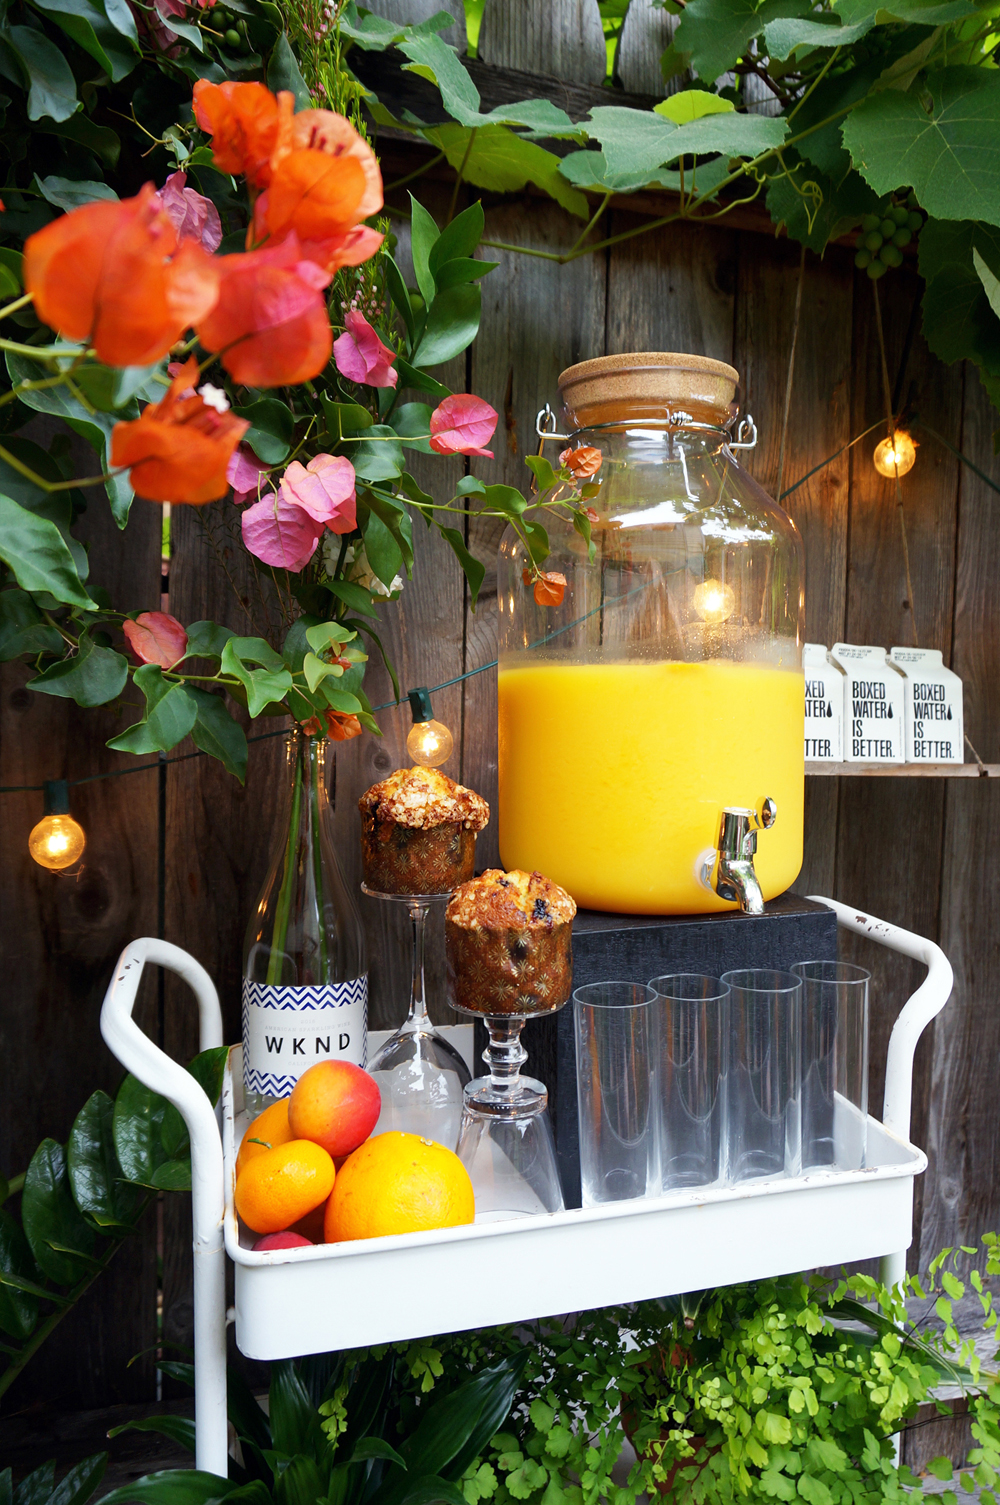 GARDEN BEVERAGE STATION: SPARKLING WINE FOR CLASSIC MIMOSAS BY   WINC  , H20 BY   BOXED WATER  .